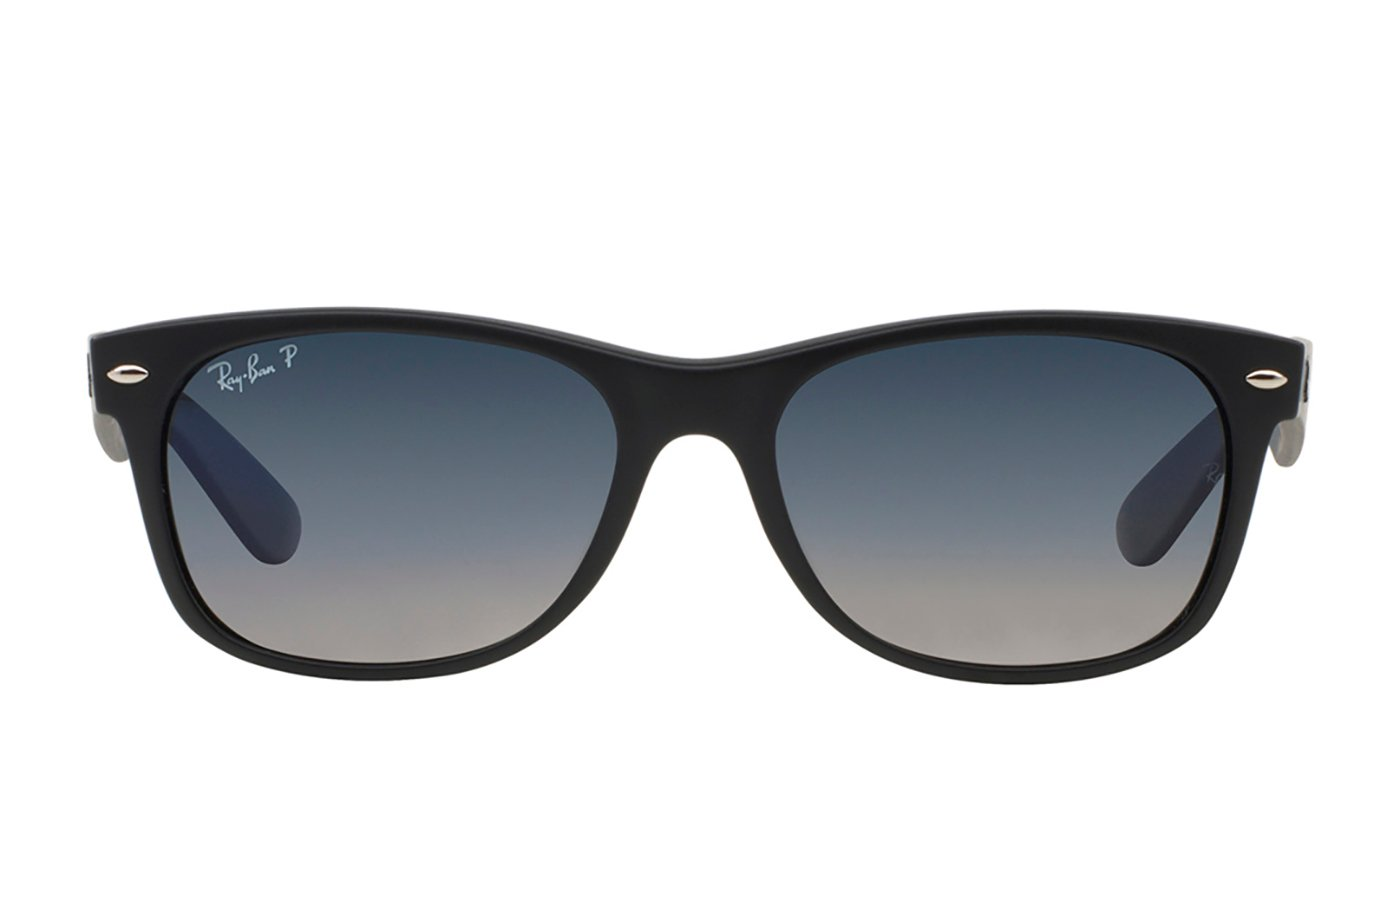 RAY-BAN NEW WAYFARER MATTE BLACK 0RB2132 52 601S78 POLARIZADA